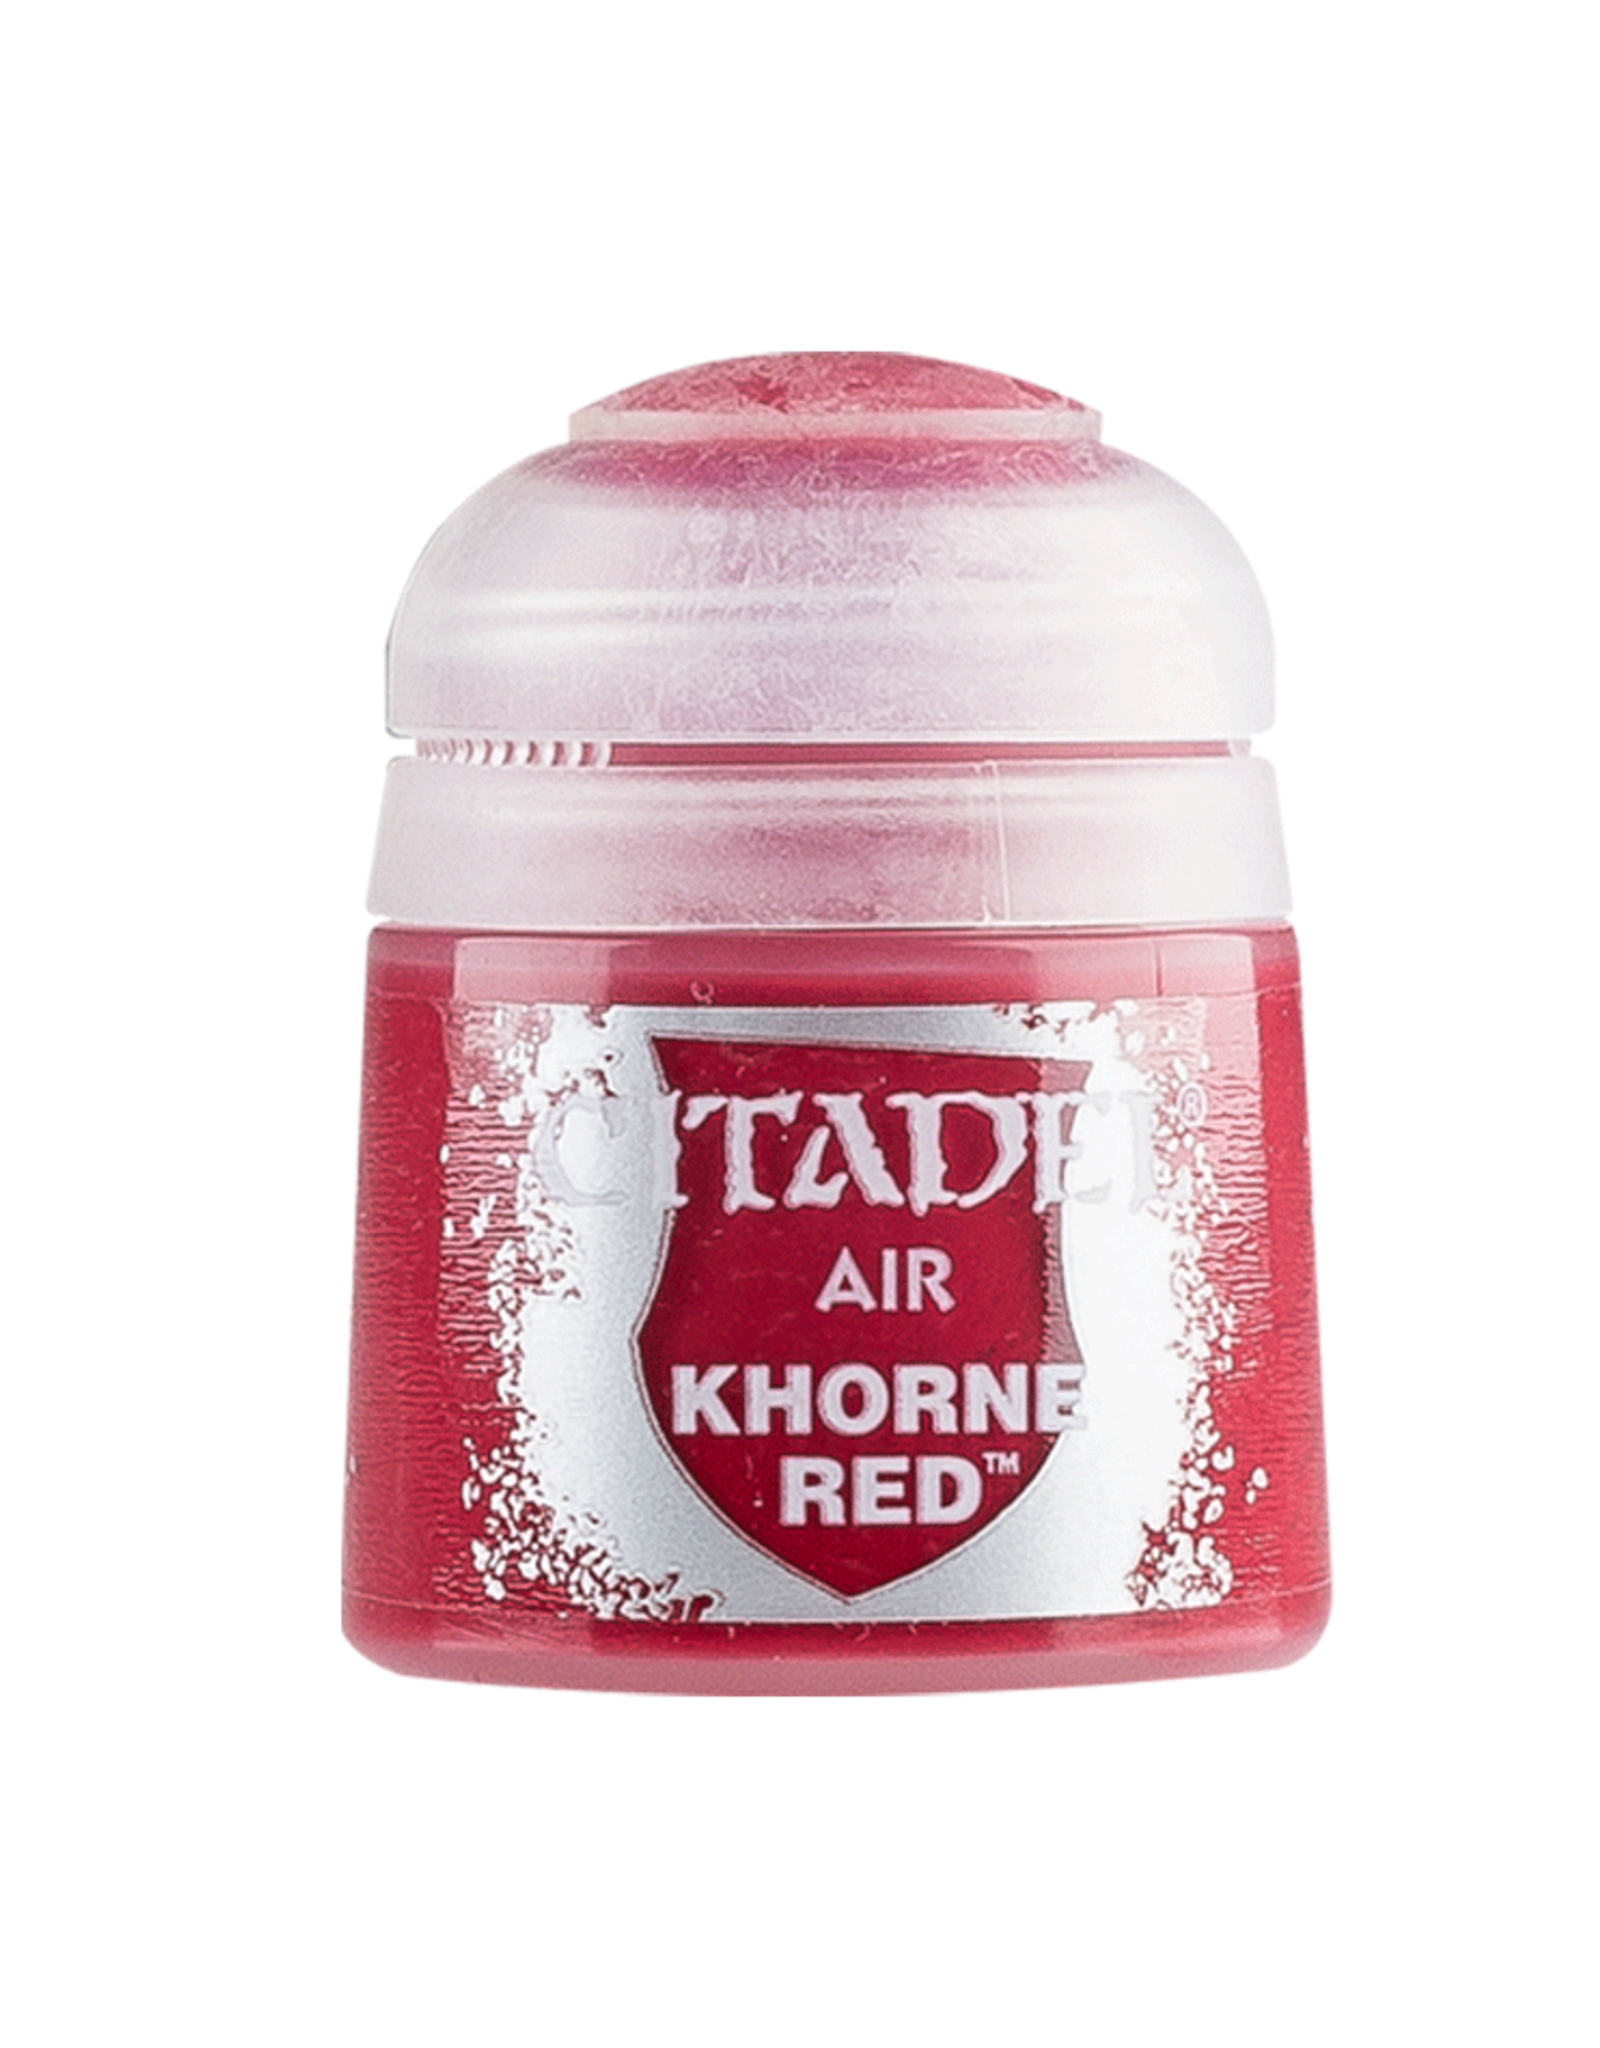 Games Workshop Citadel Air: Khorne Red (24ml)